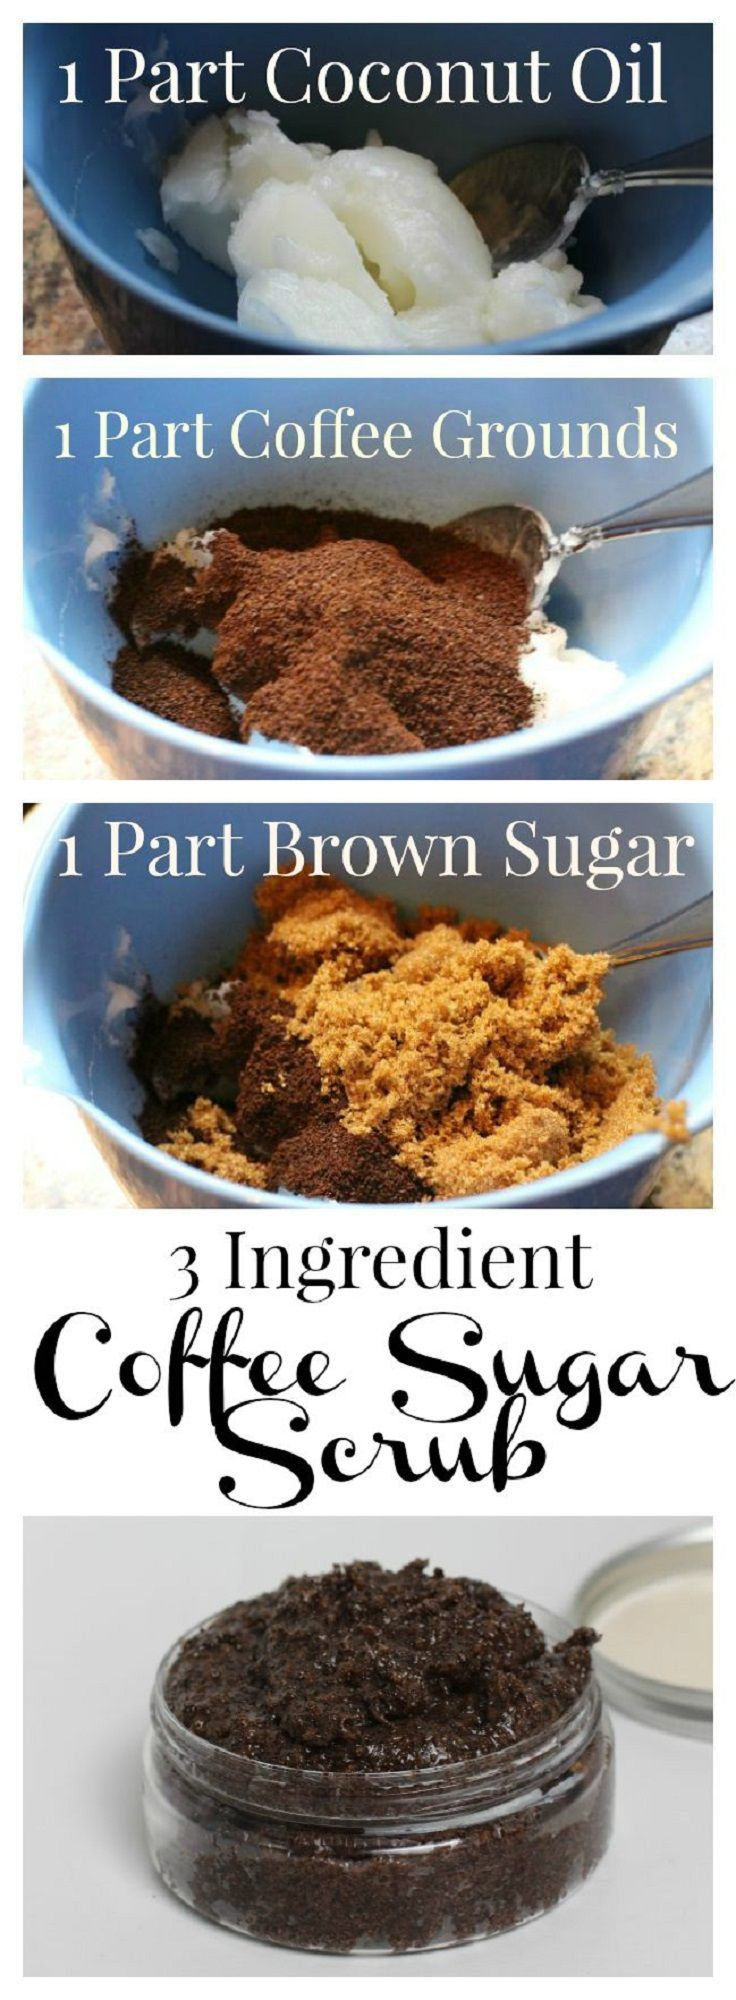 3 Ingredient Coffee and Sugar Scrub - 13 Homemade Cellulite Remedies, Exercises and Juice Recipes